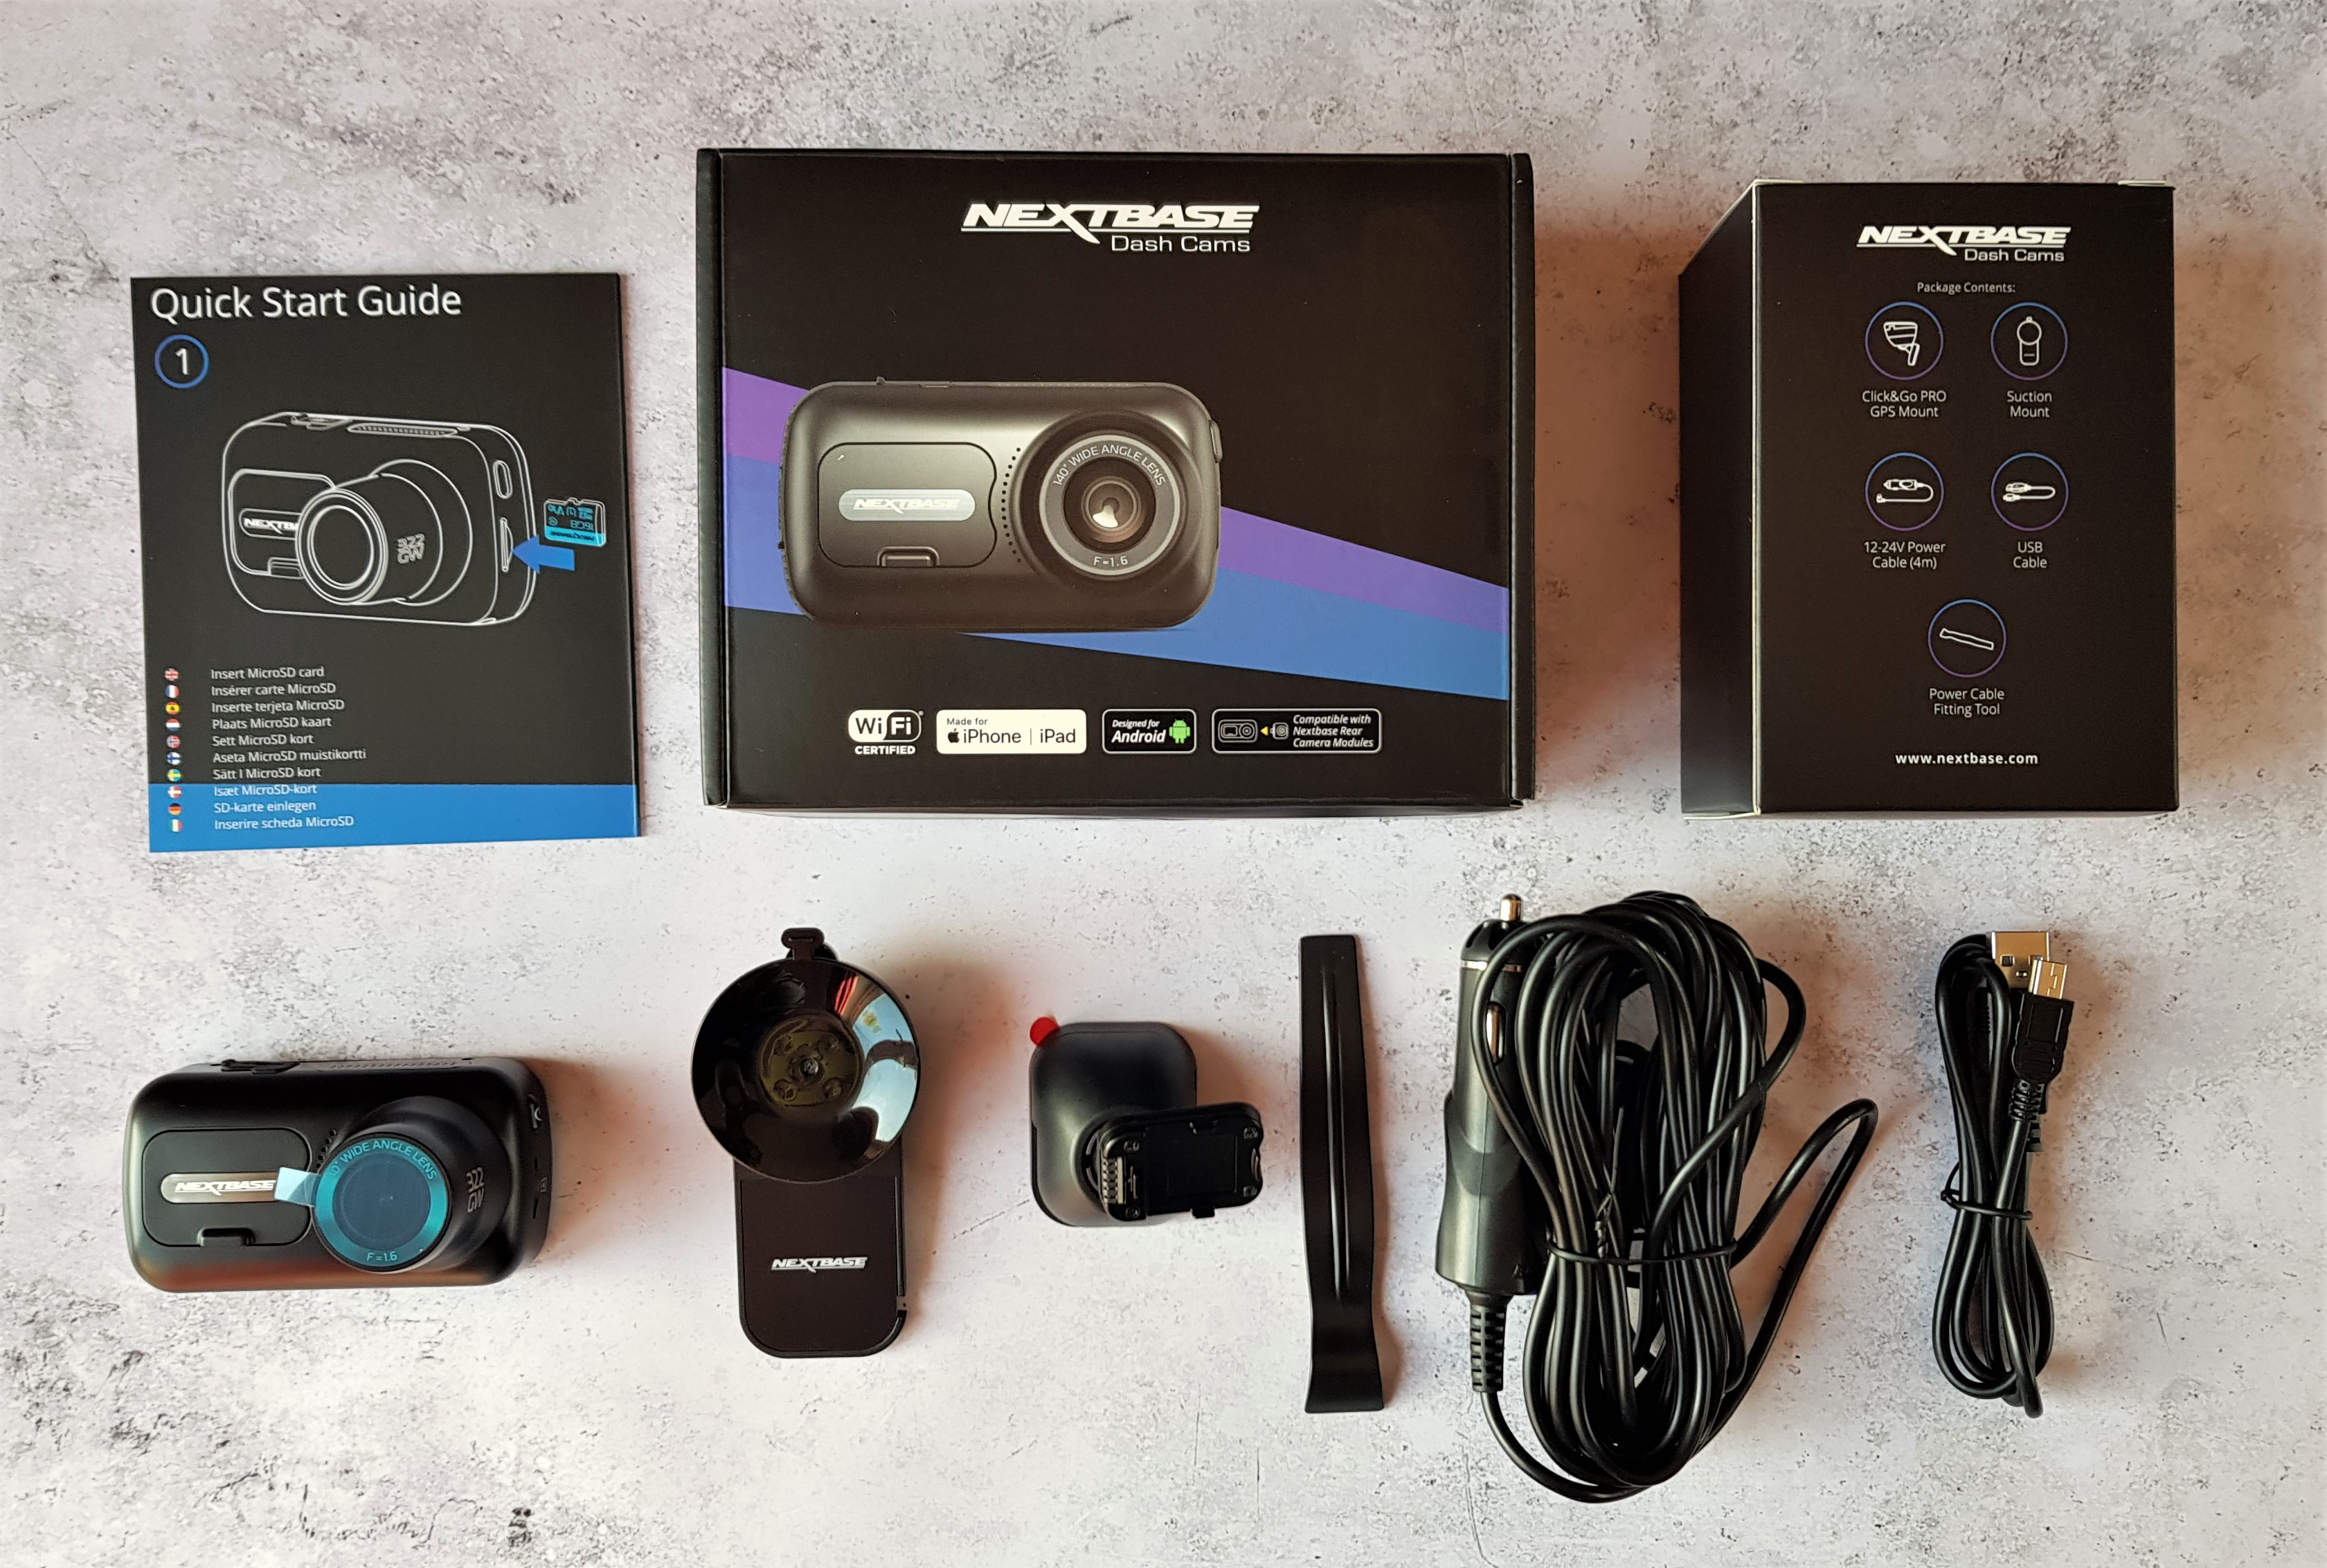 Nextbase 322GW dash cam and contents